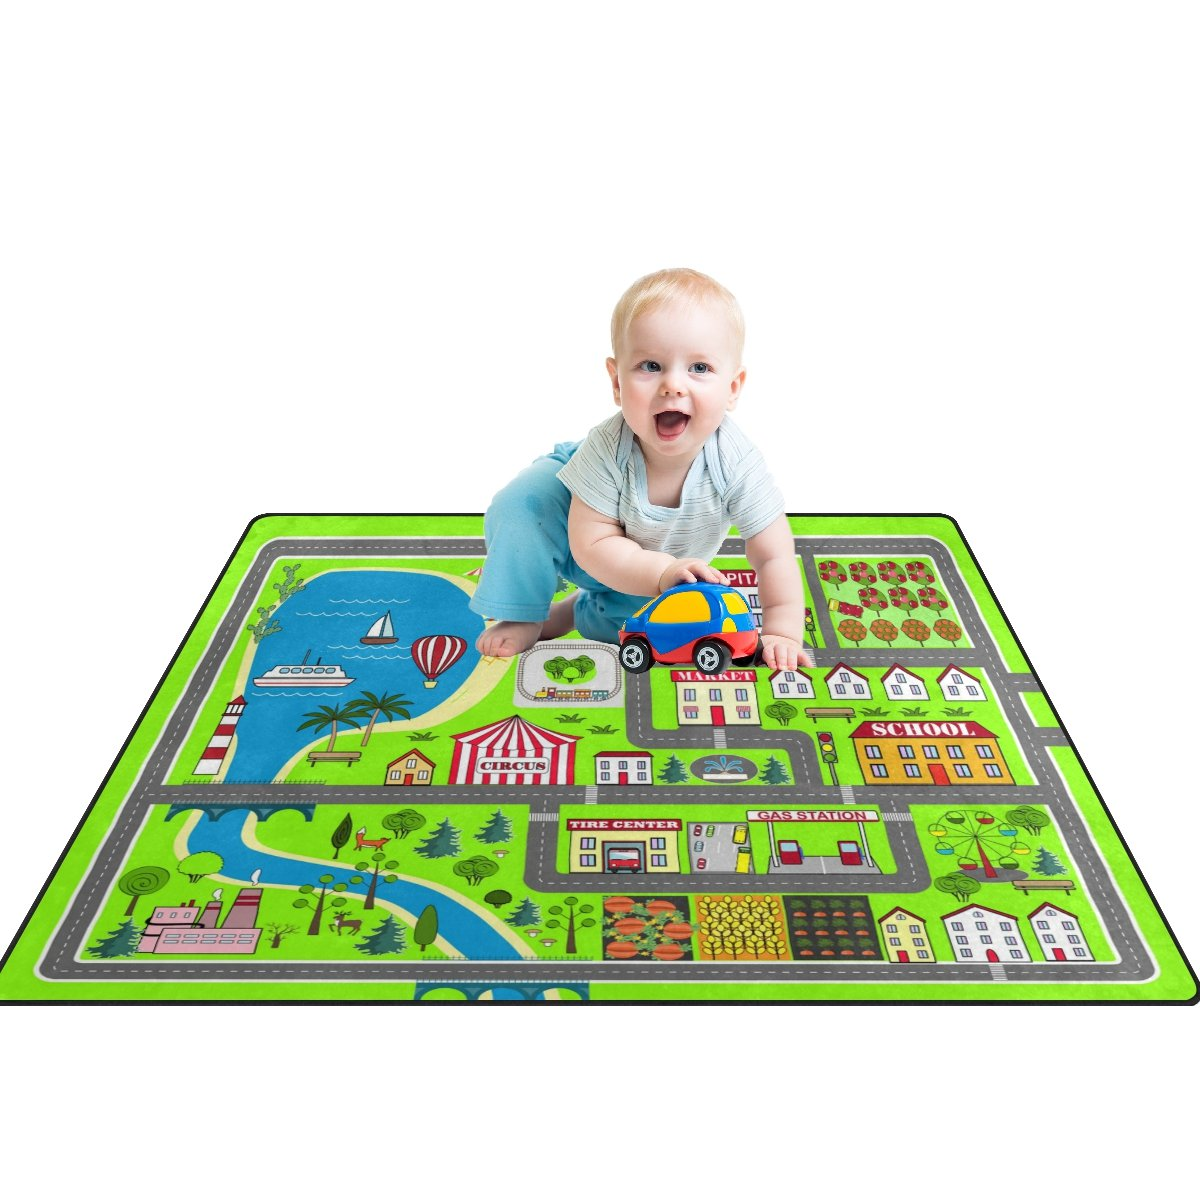 My Little Nest Kids Children Lovely City Buildings Park Road Map Baby Play Mat Game Area Rug Non Slip Soft Educational Fun Carpets for Bedroom Classroom Nursery 4' x 5'3''